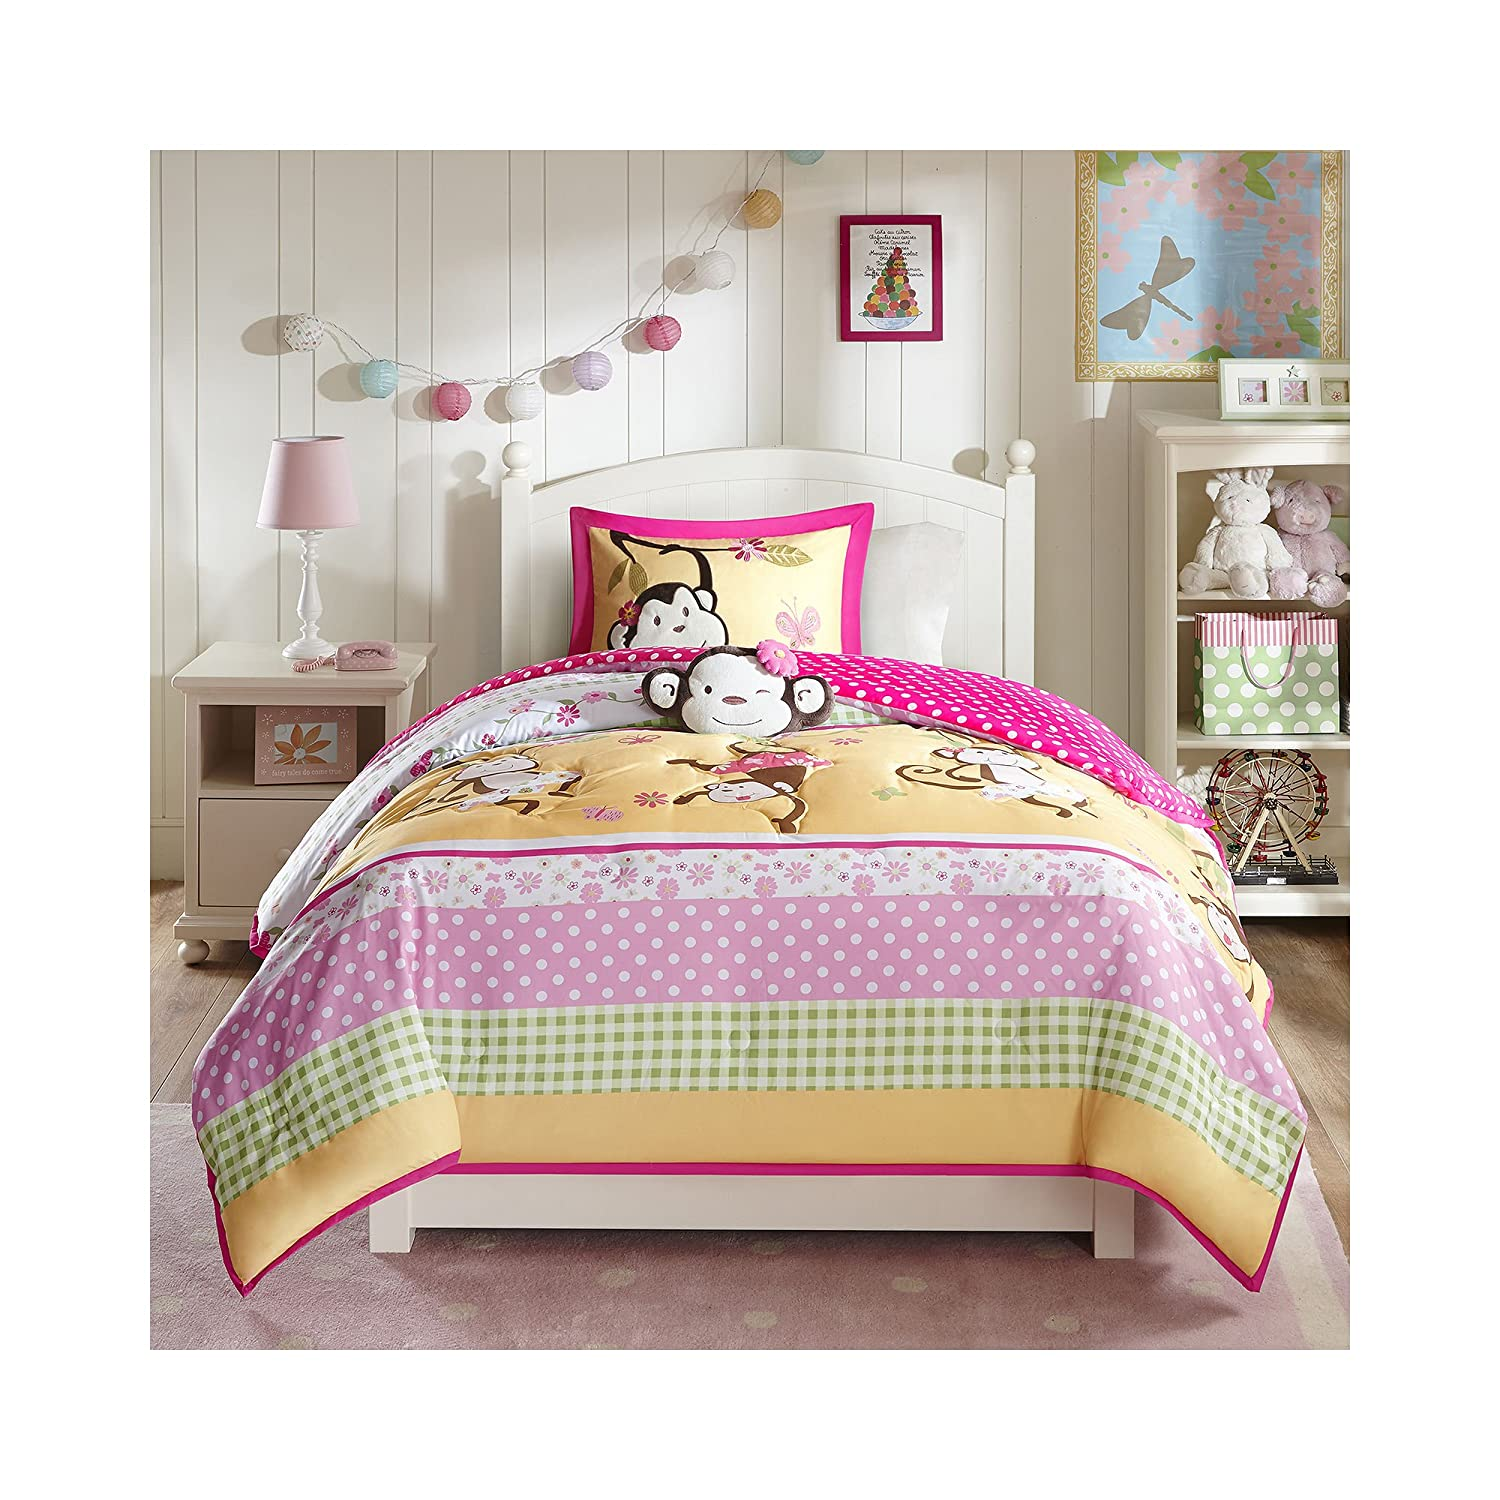 4 Piece Comforter Set, Pink, Full/Queen